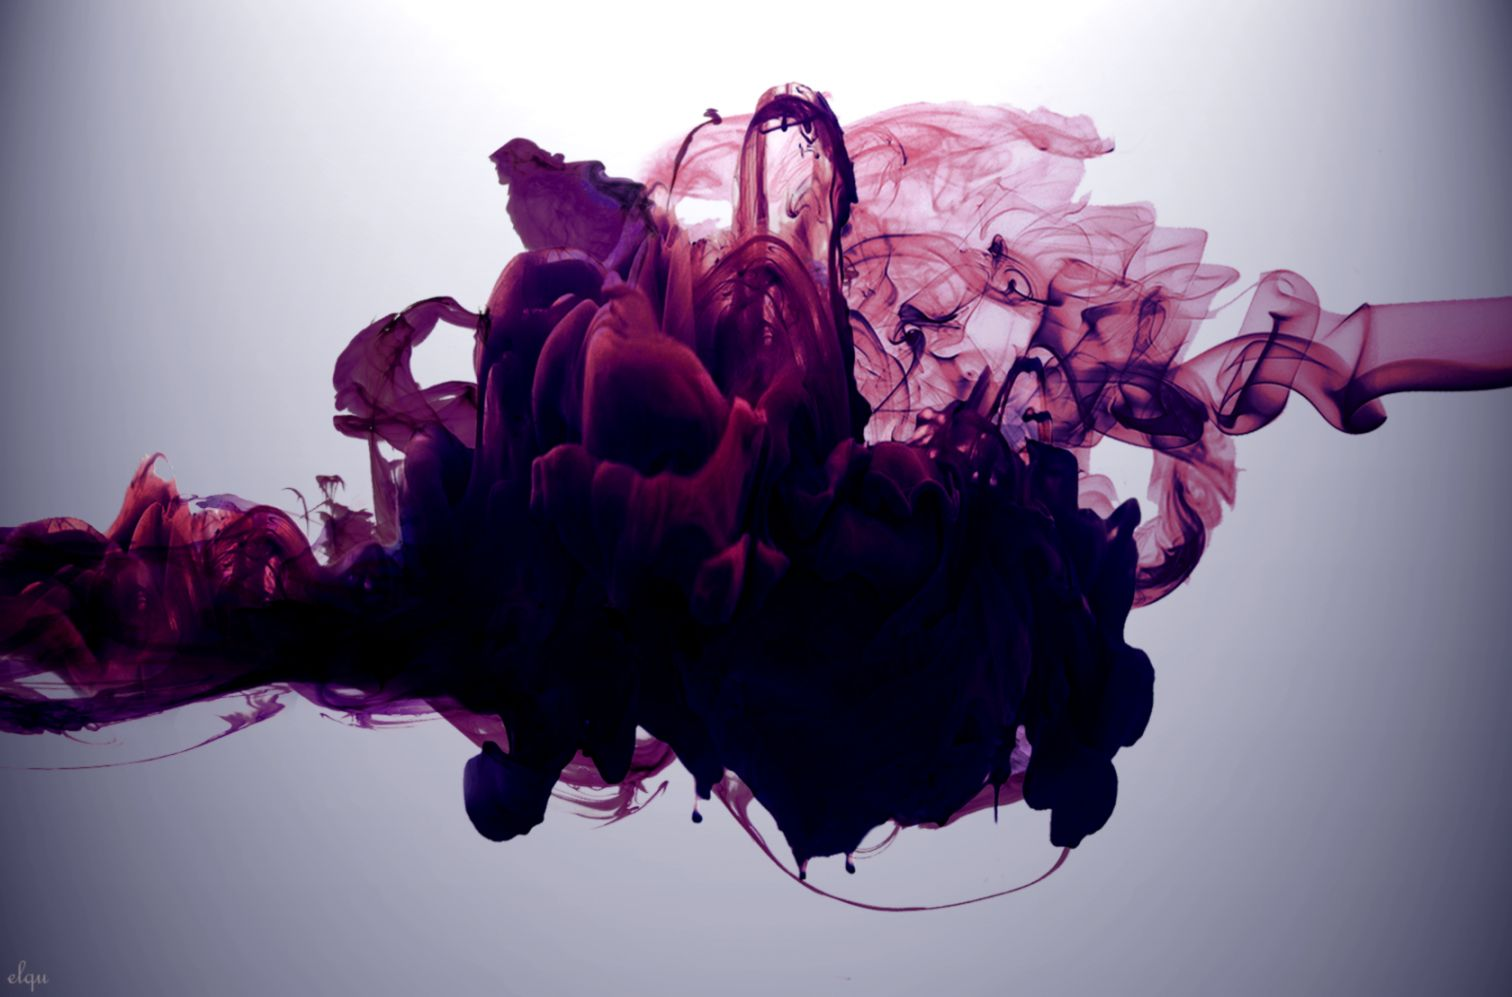 purple wallpaper abstract painting hd best image background